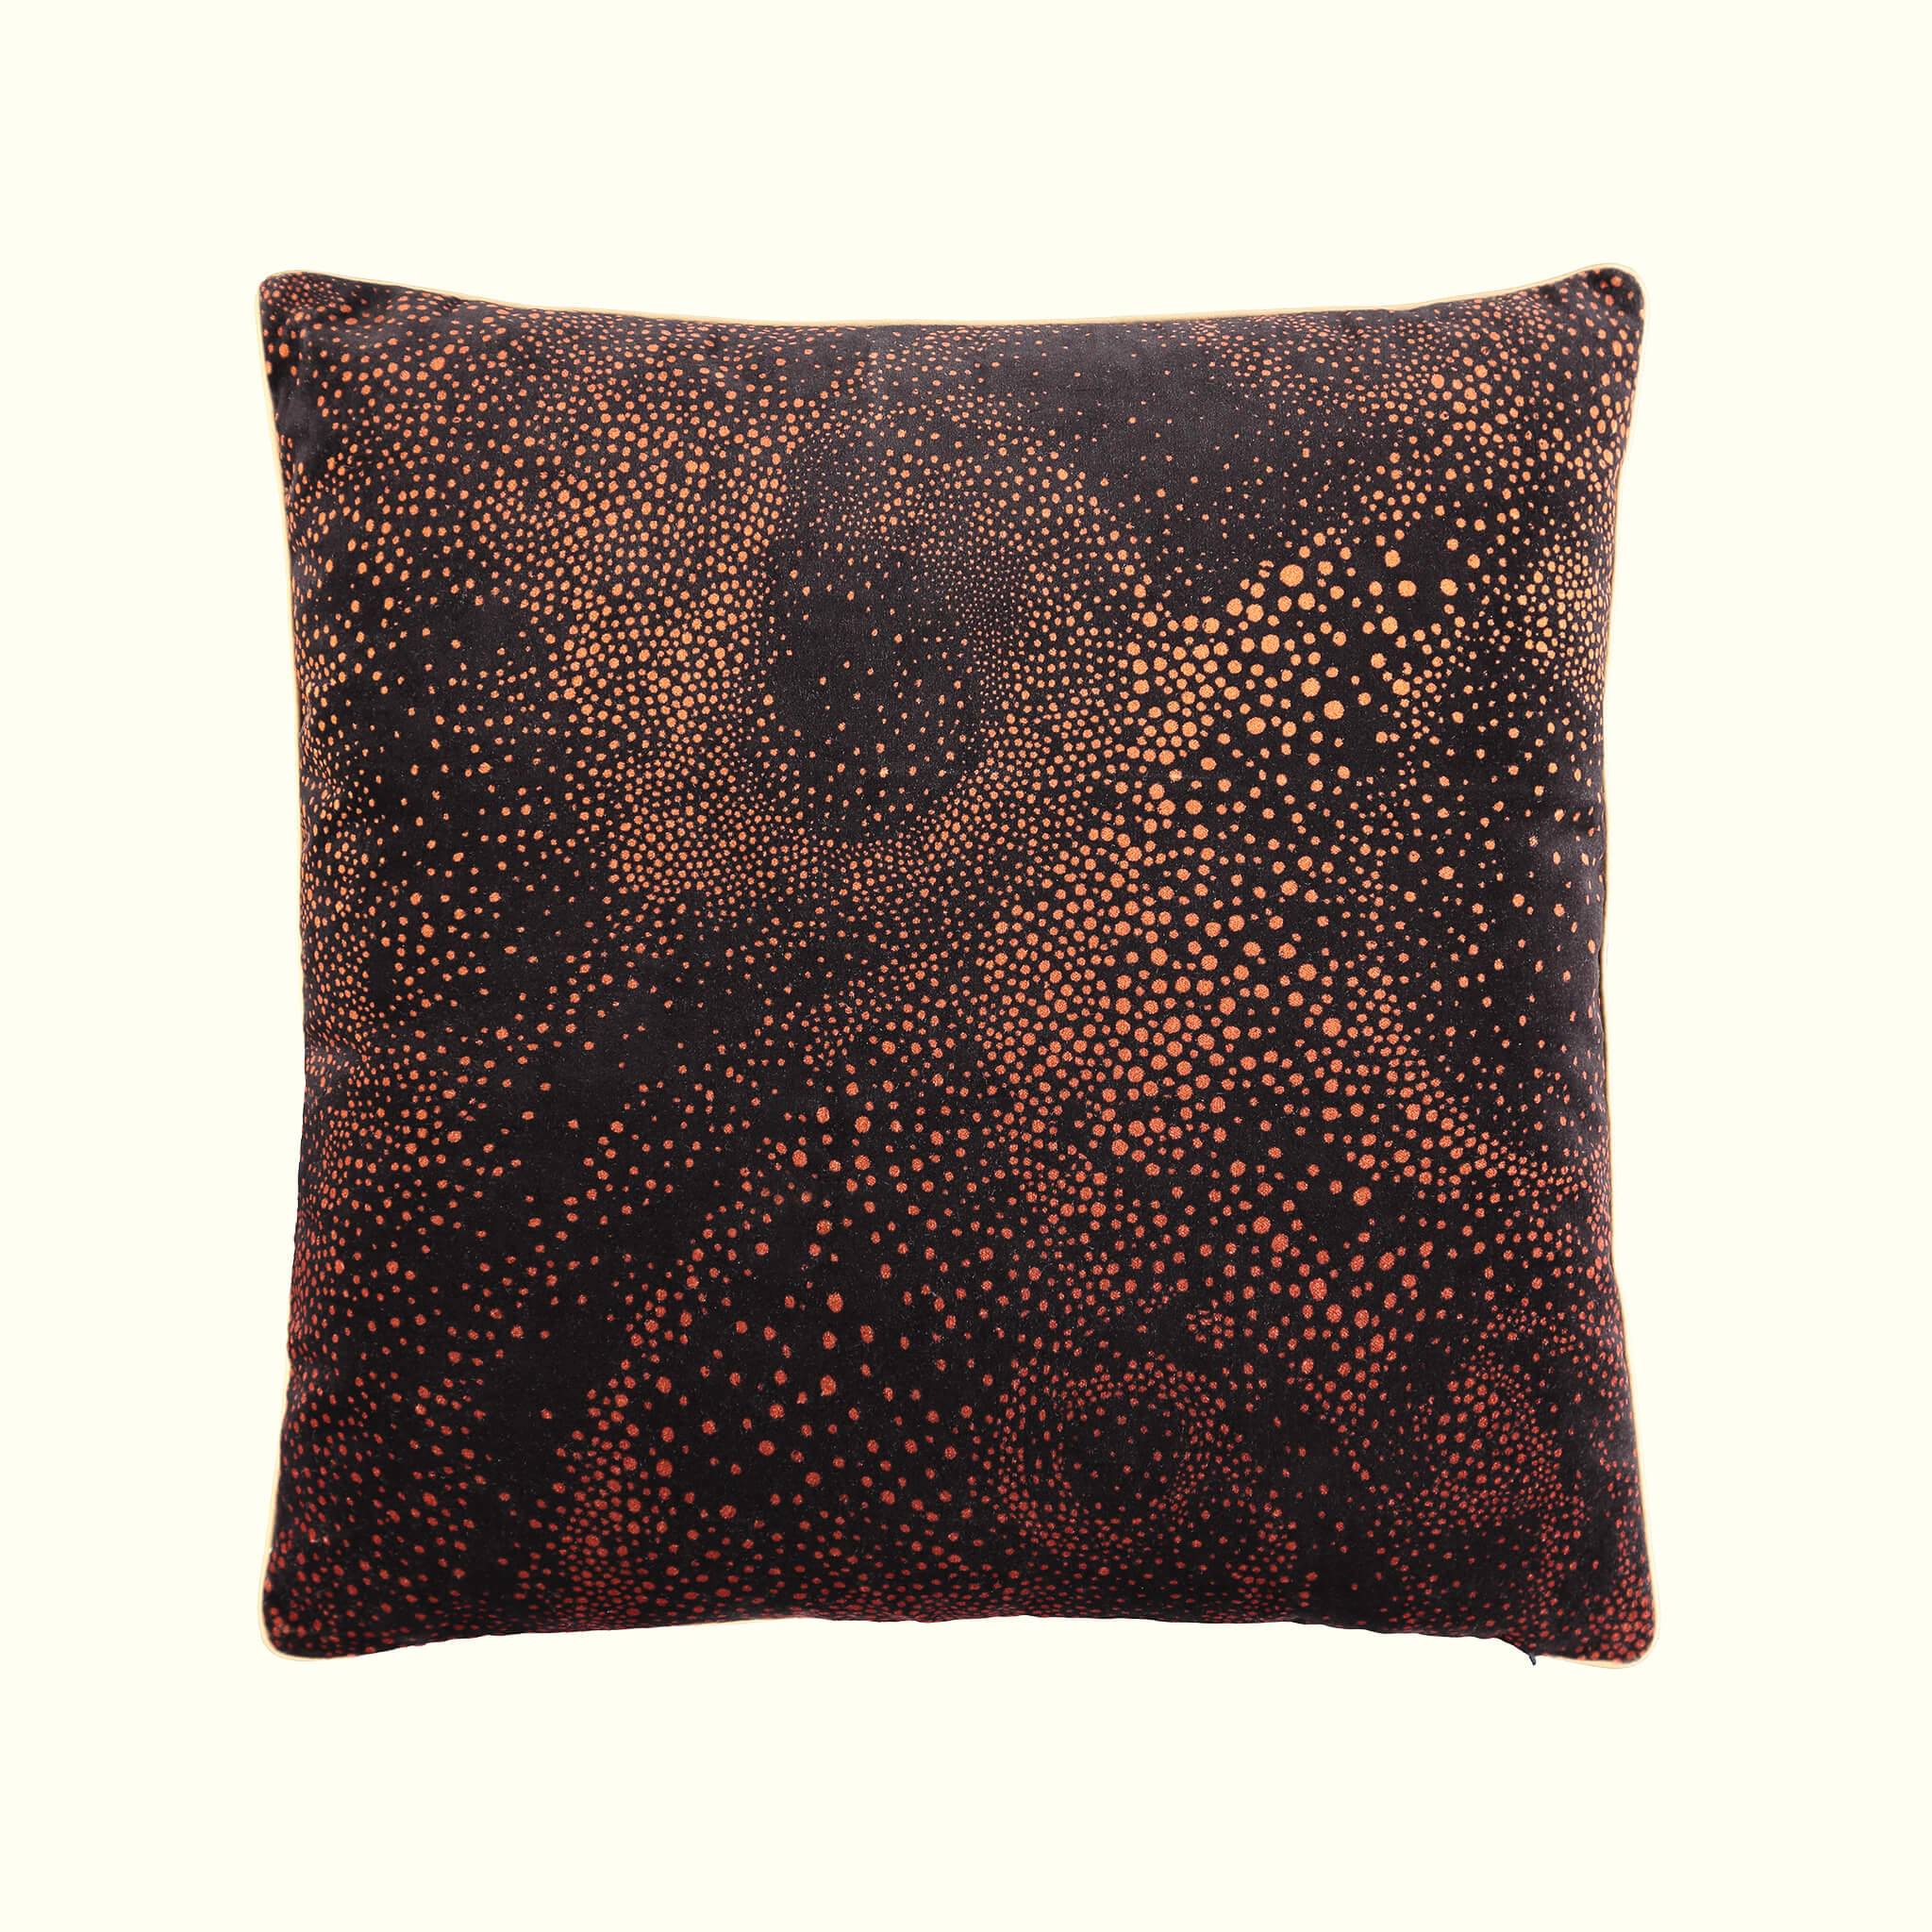 A luxury British cotton velvet cushion by GVE in black and red Aurora print design.